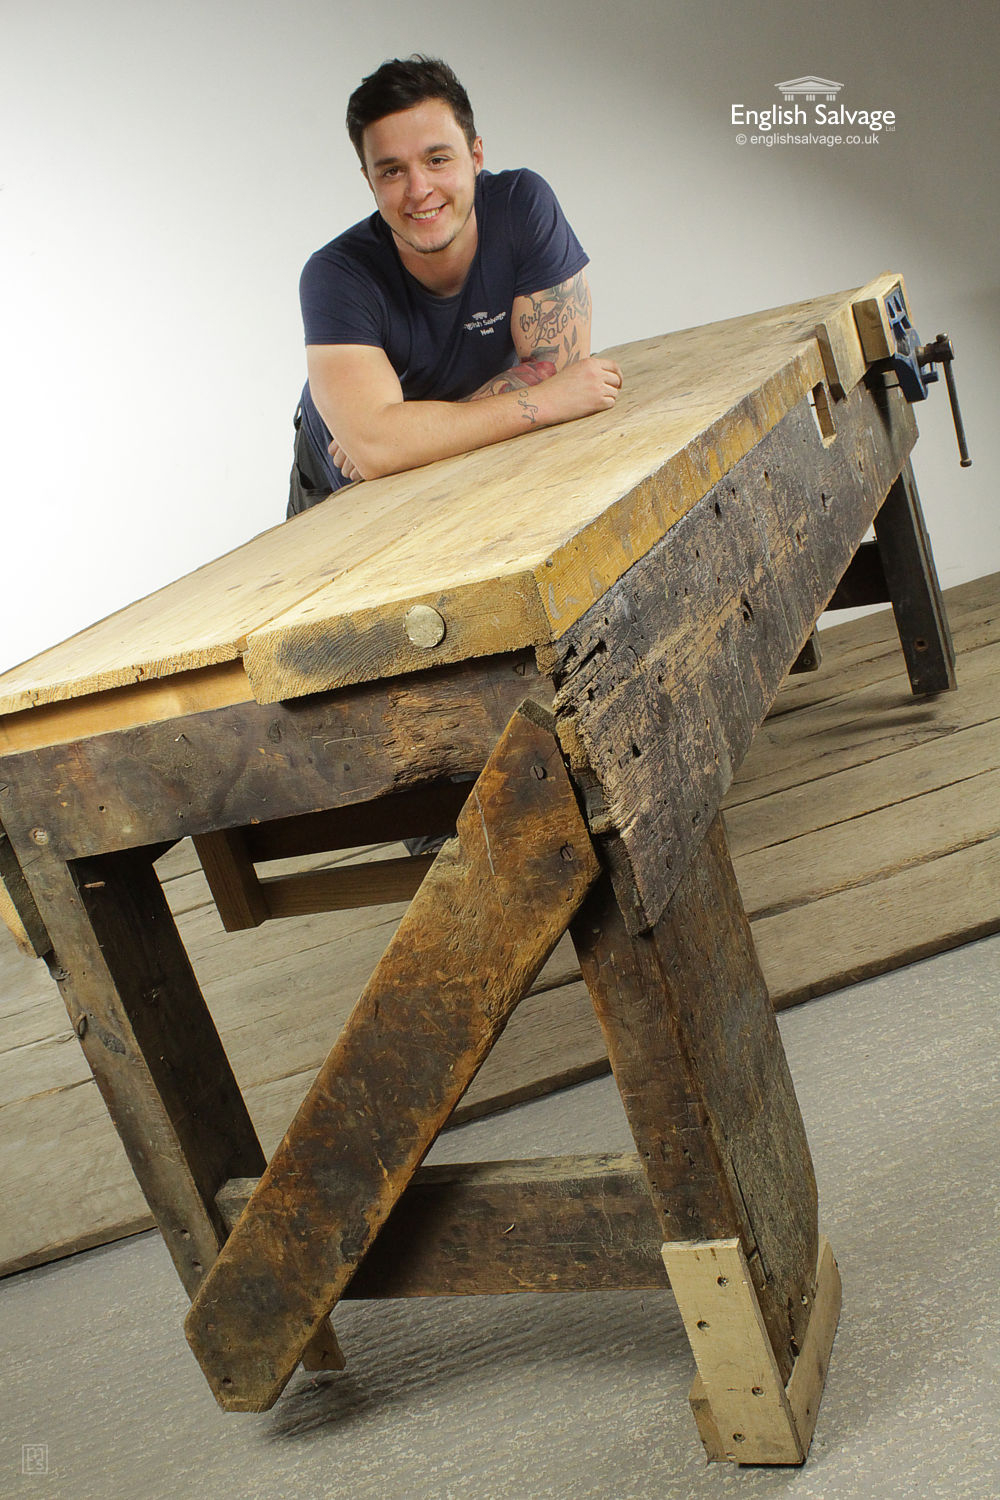 Reclaimed Wooden Work Bench & Vice